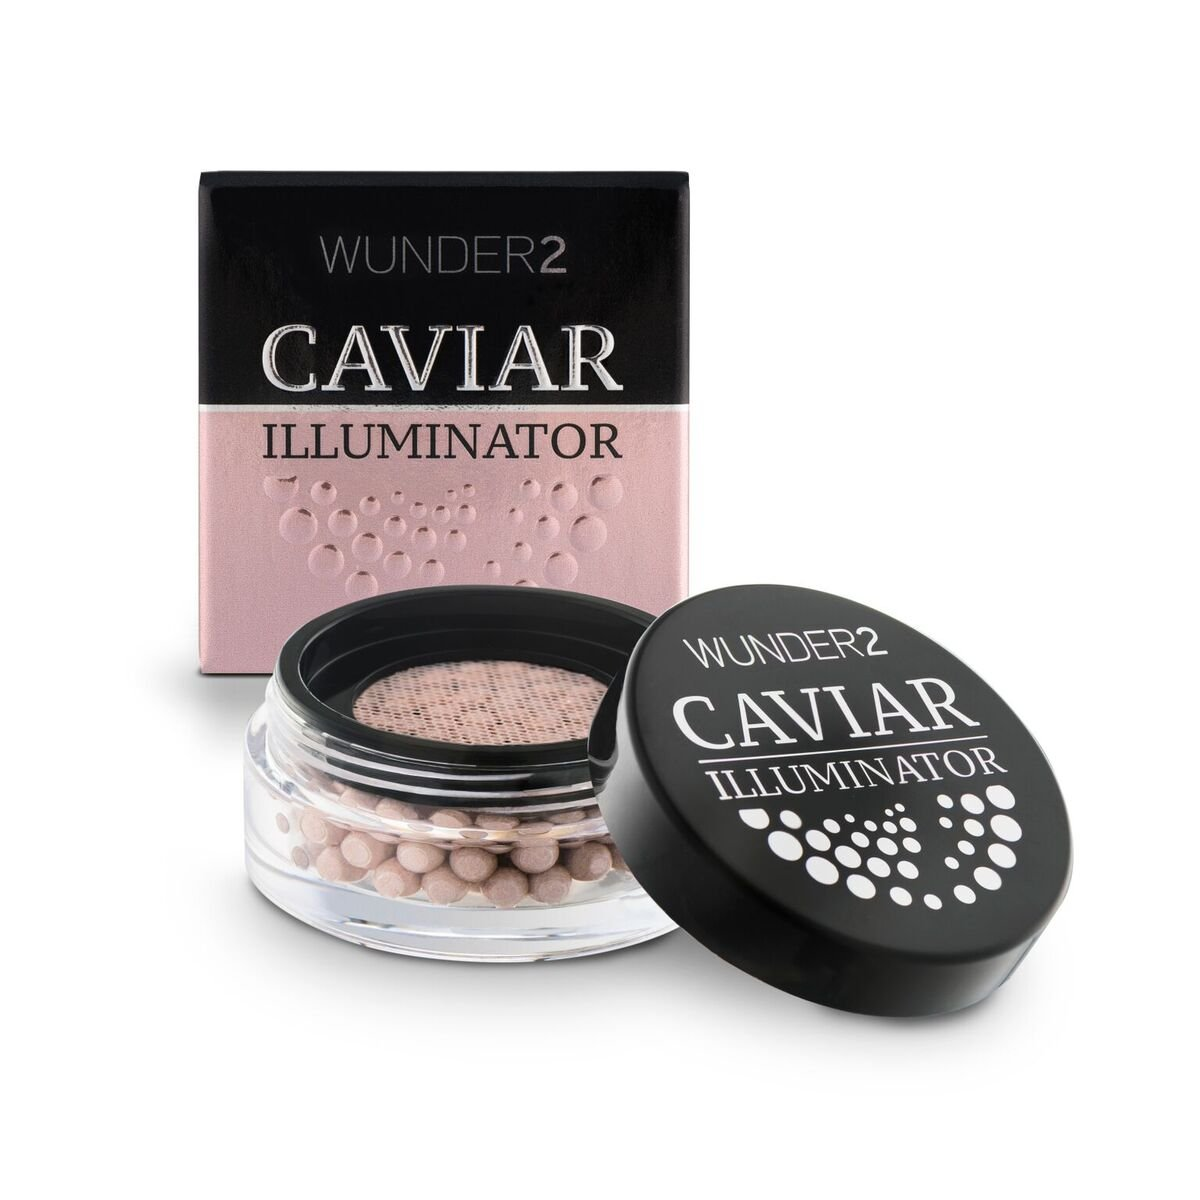 WUNDER2 CAVIAR ILLUMINATOR - Cream Highlighter Makeup For Glowy Skin, Mother of Pearl Color